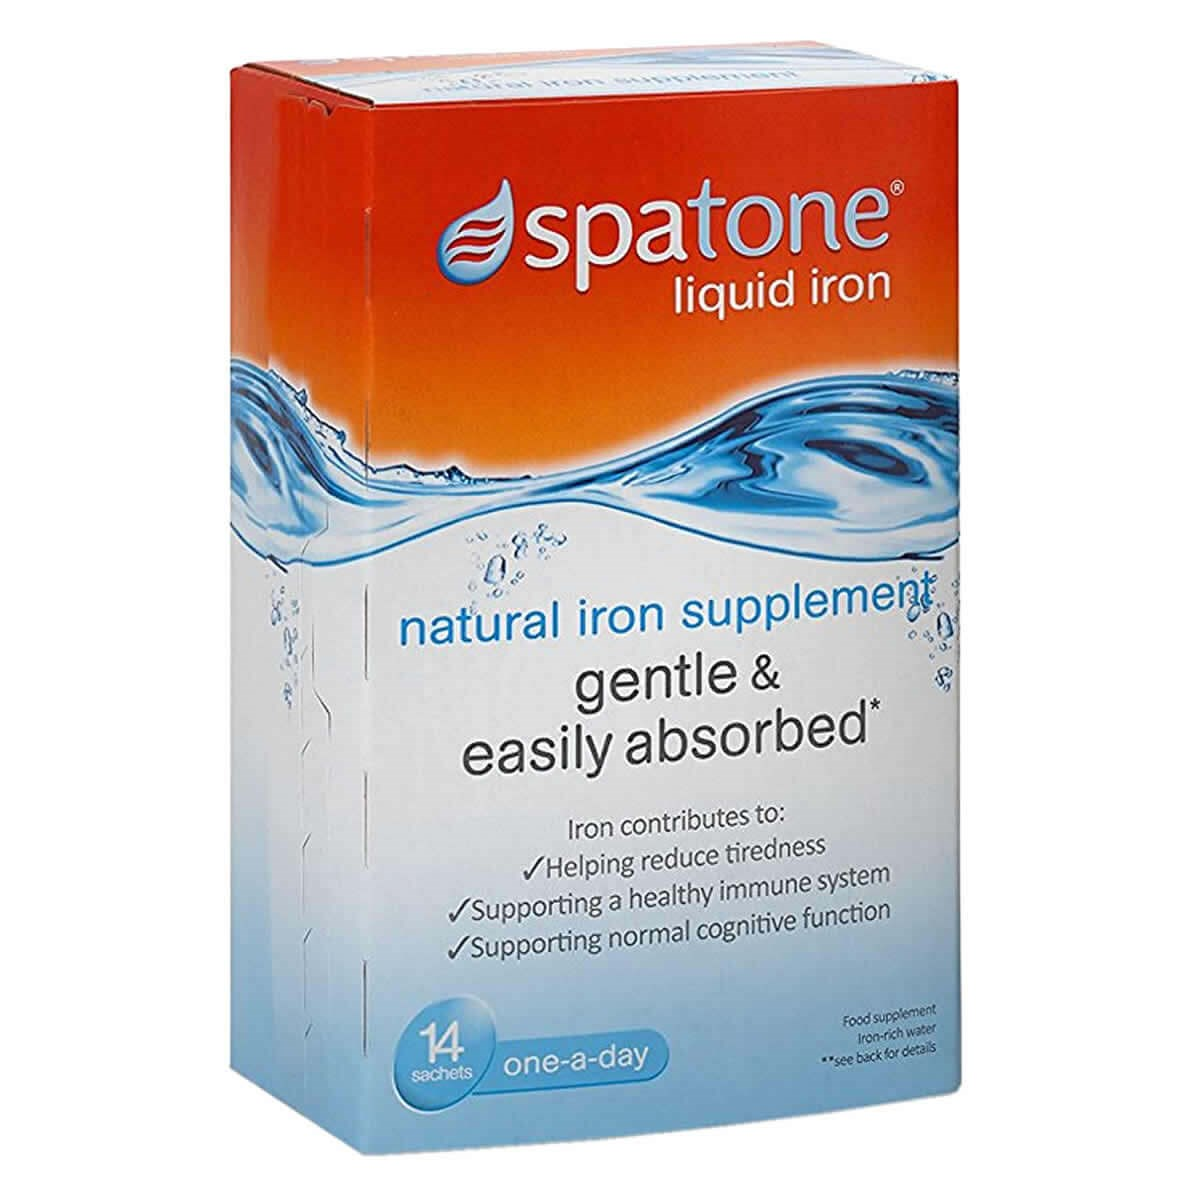 Spatone Natural Liquid Iron Supplement